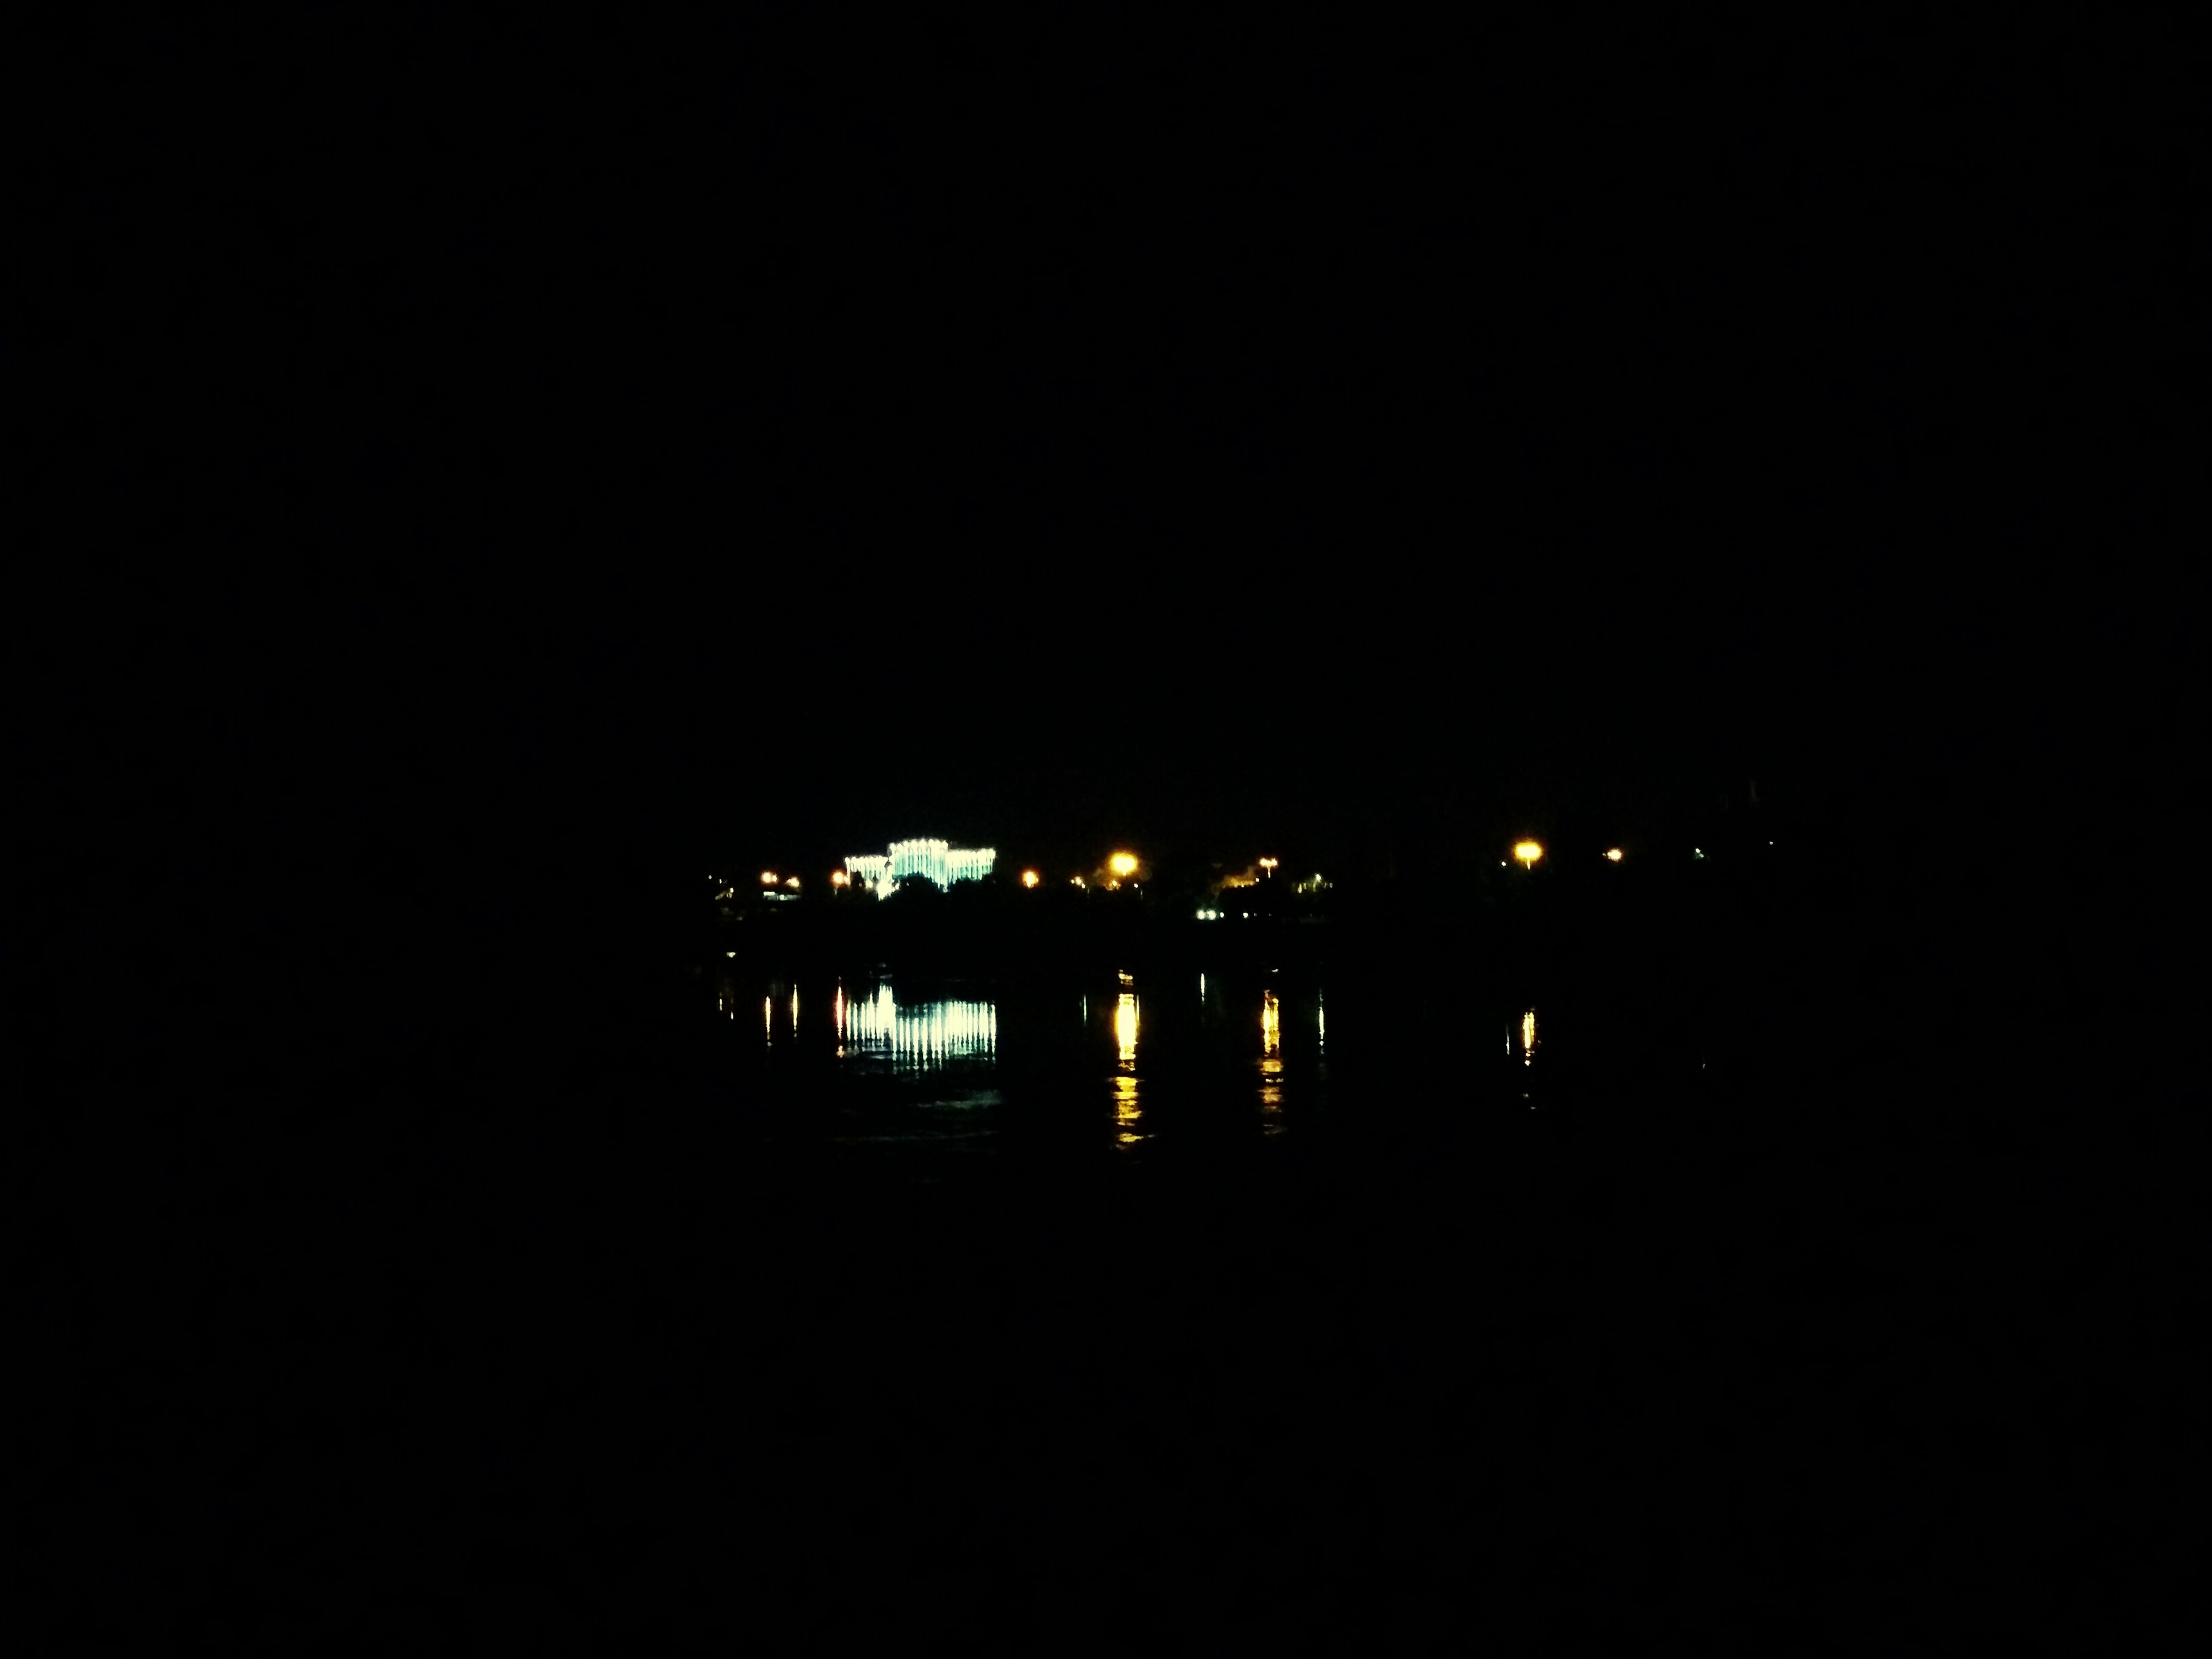 night, illuminated, water, reflection, copy space, dark, clear sky, built structure, river, architecture, waterfront, lake, tranquility, lighting equipment, street light, silhouette, outdoors, building exterior, no people, tranquil scene